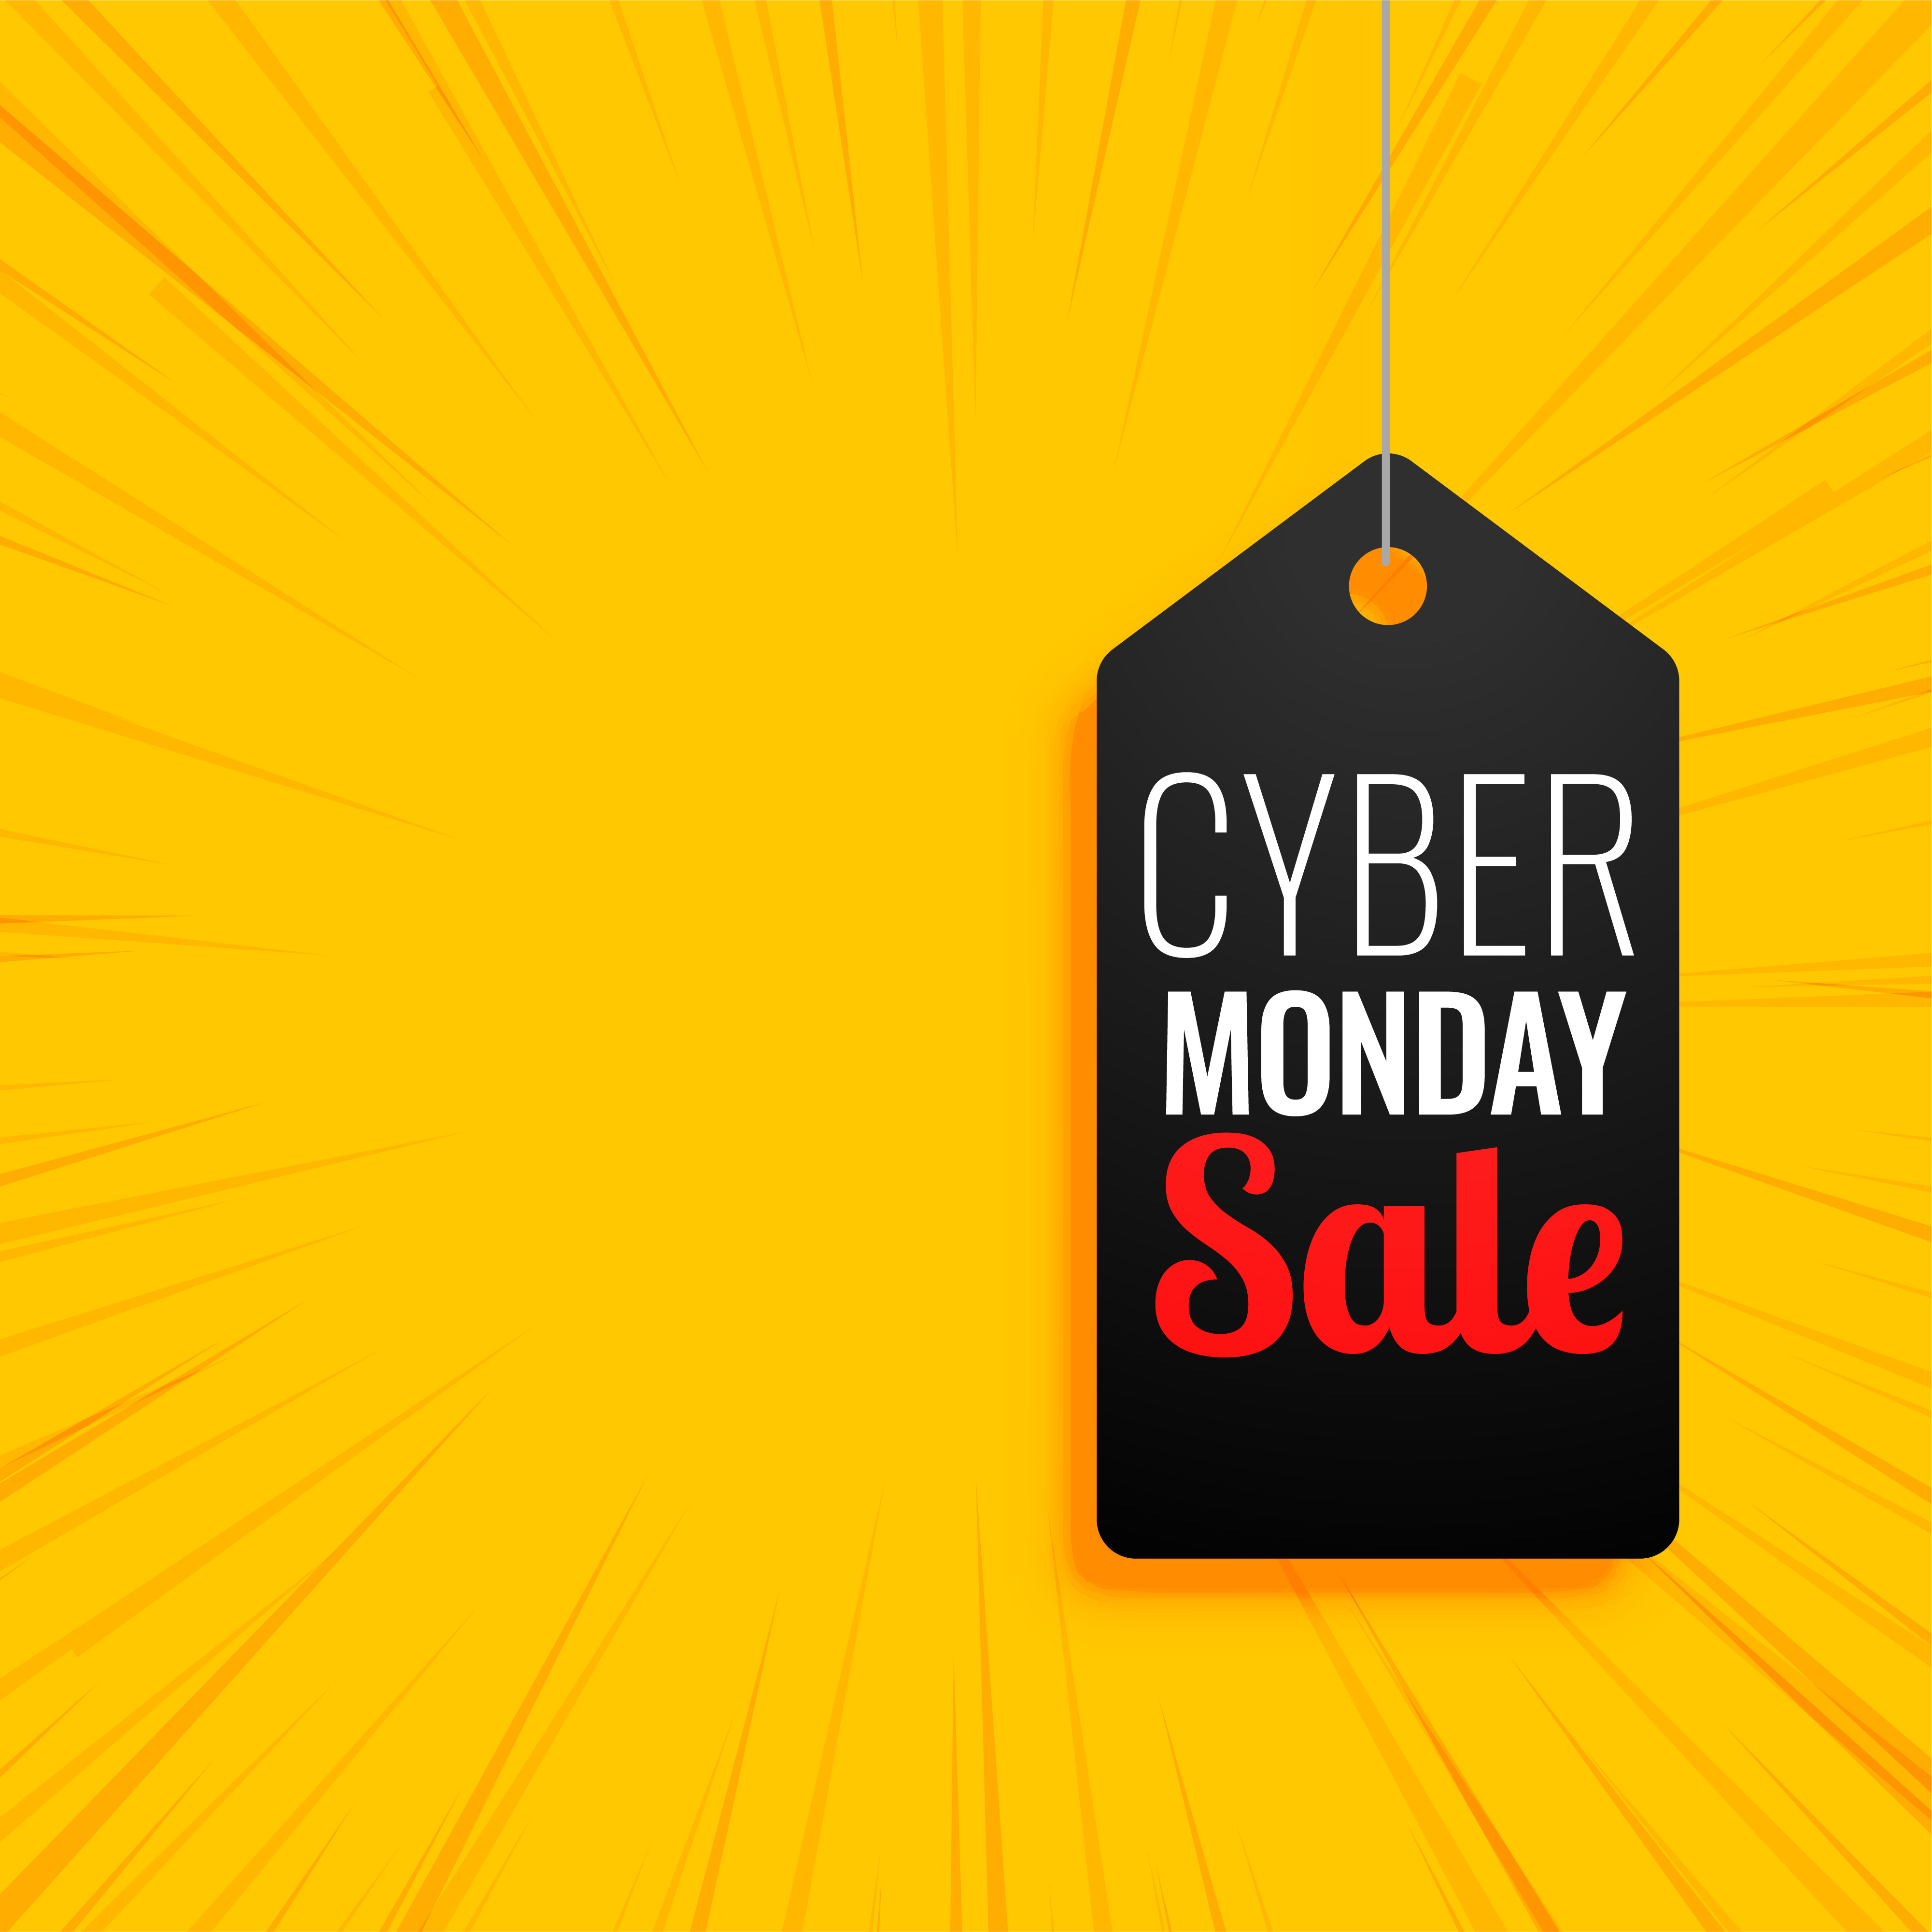 Cyber monday sale tag on yellow background